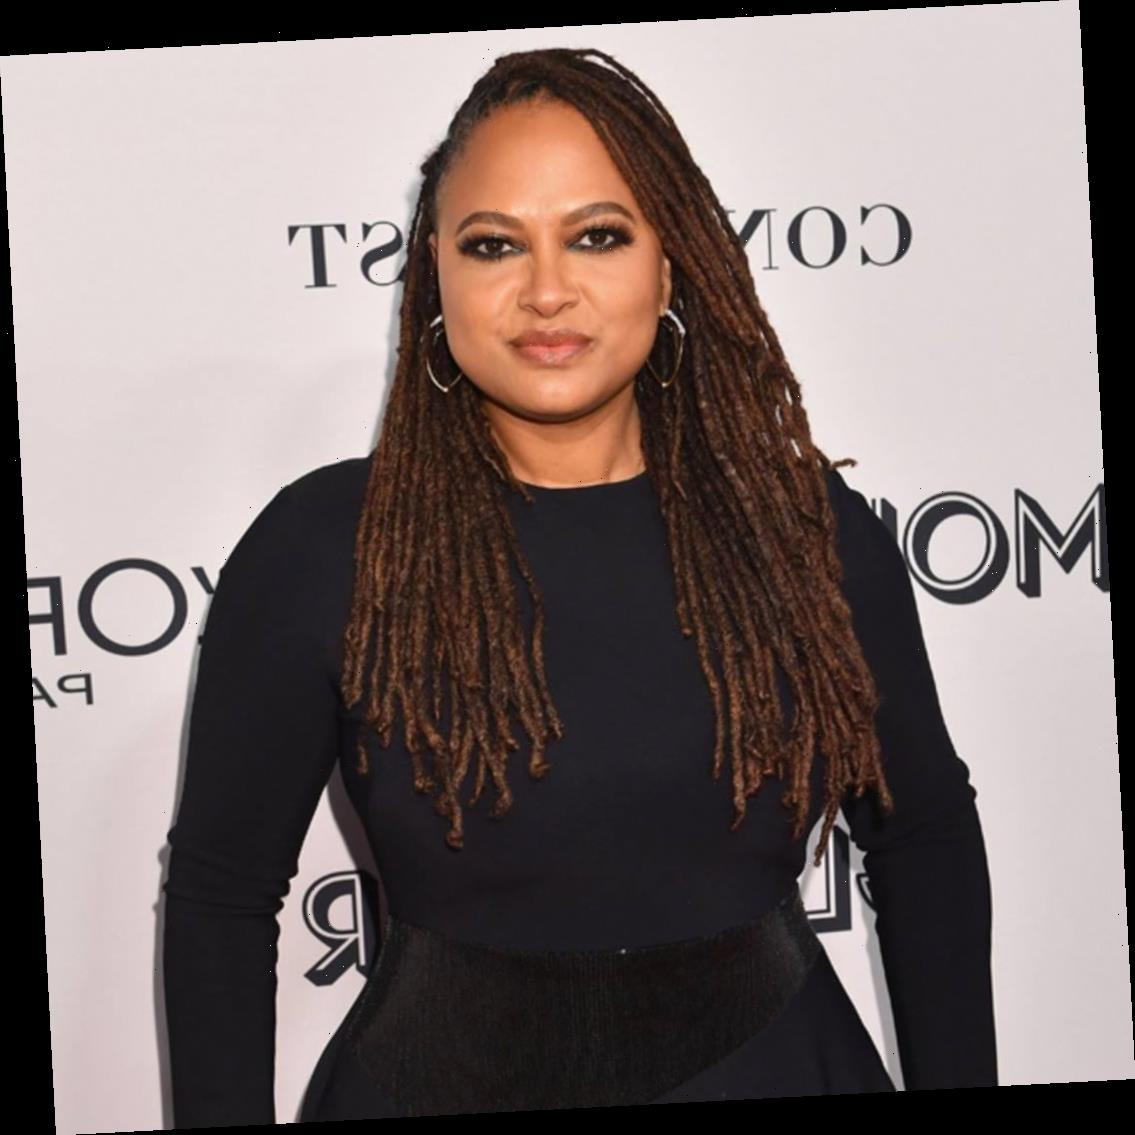 Ava DuVernay Shares Powerful Election Message at Black Lives Matter Event